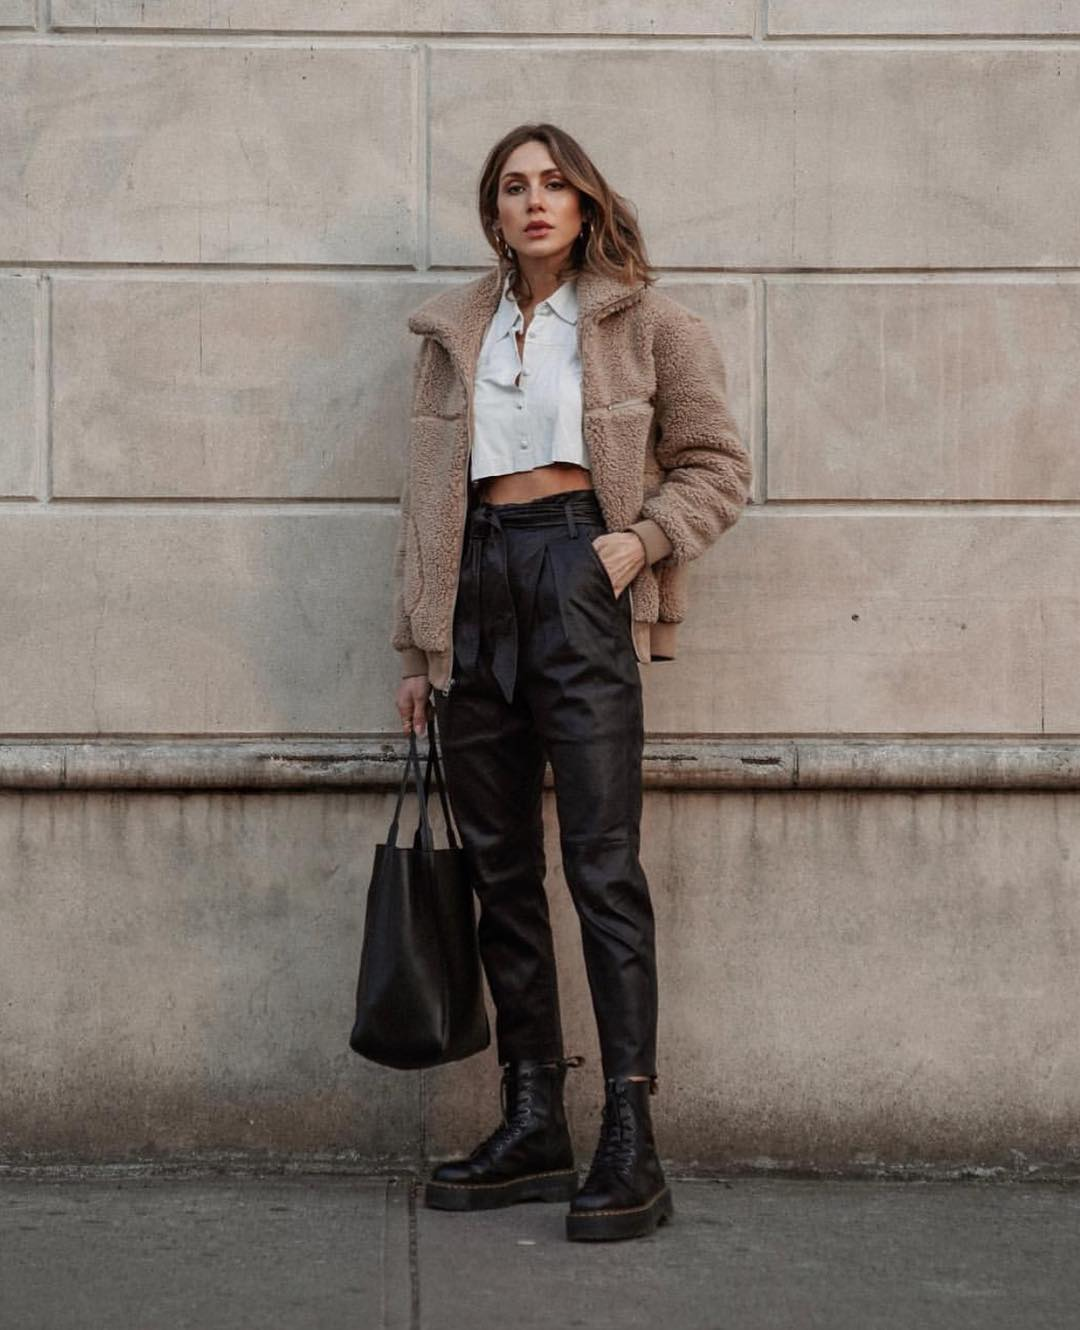 Spring Urban Essentials For Women: Leather, Denim And Kicks 2019